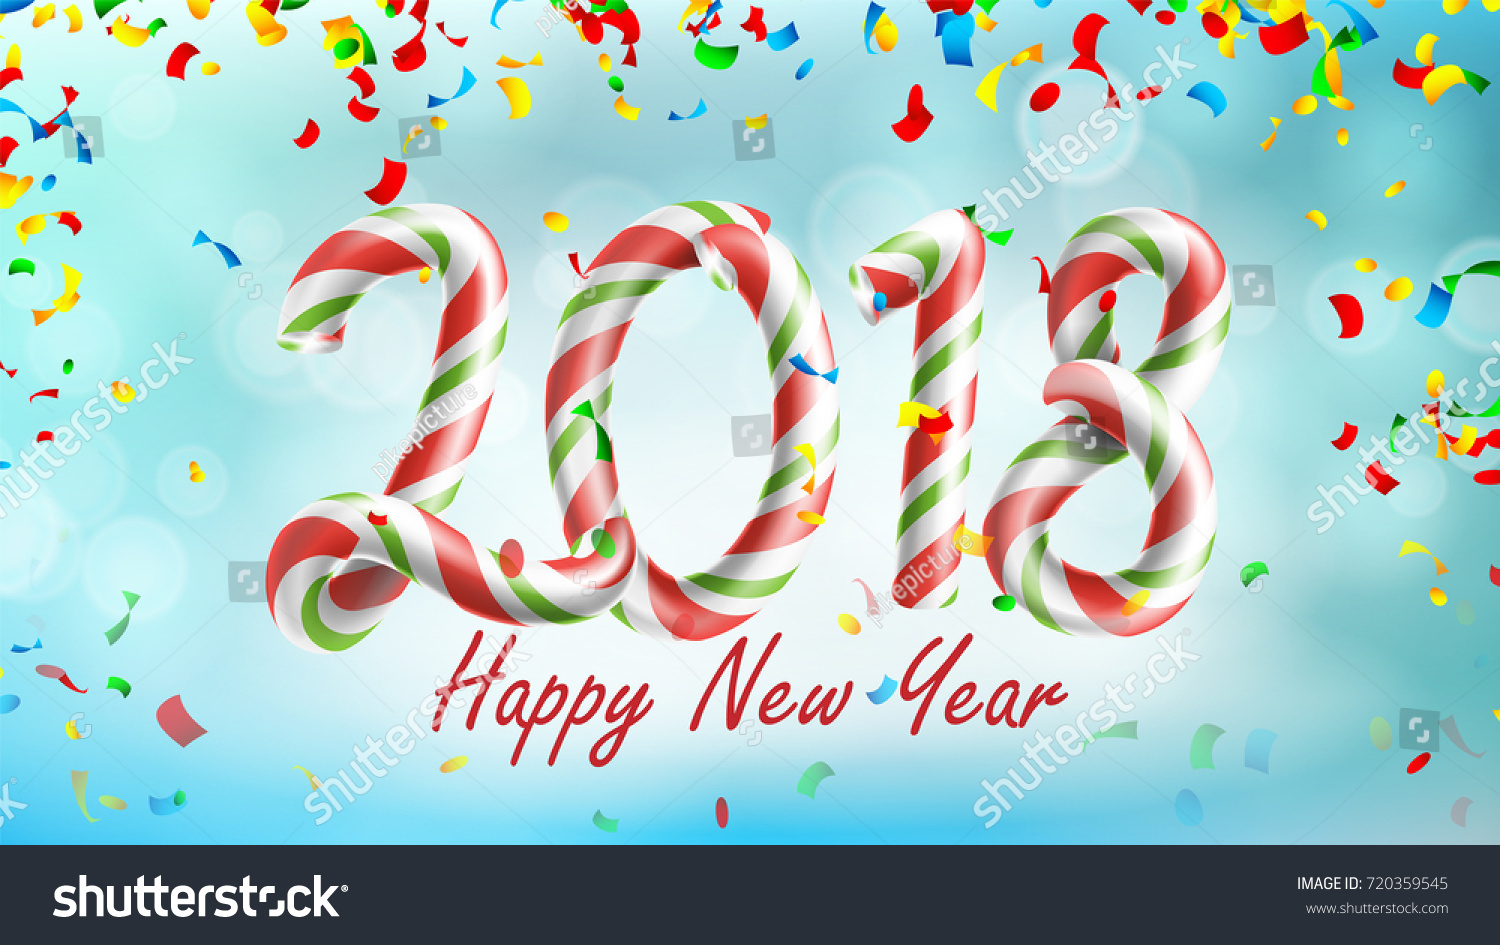 happy new year 2018 background vector poster or greeting card design template 2018 falling